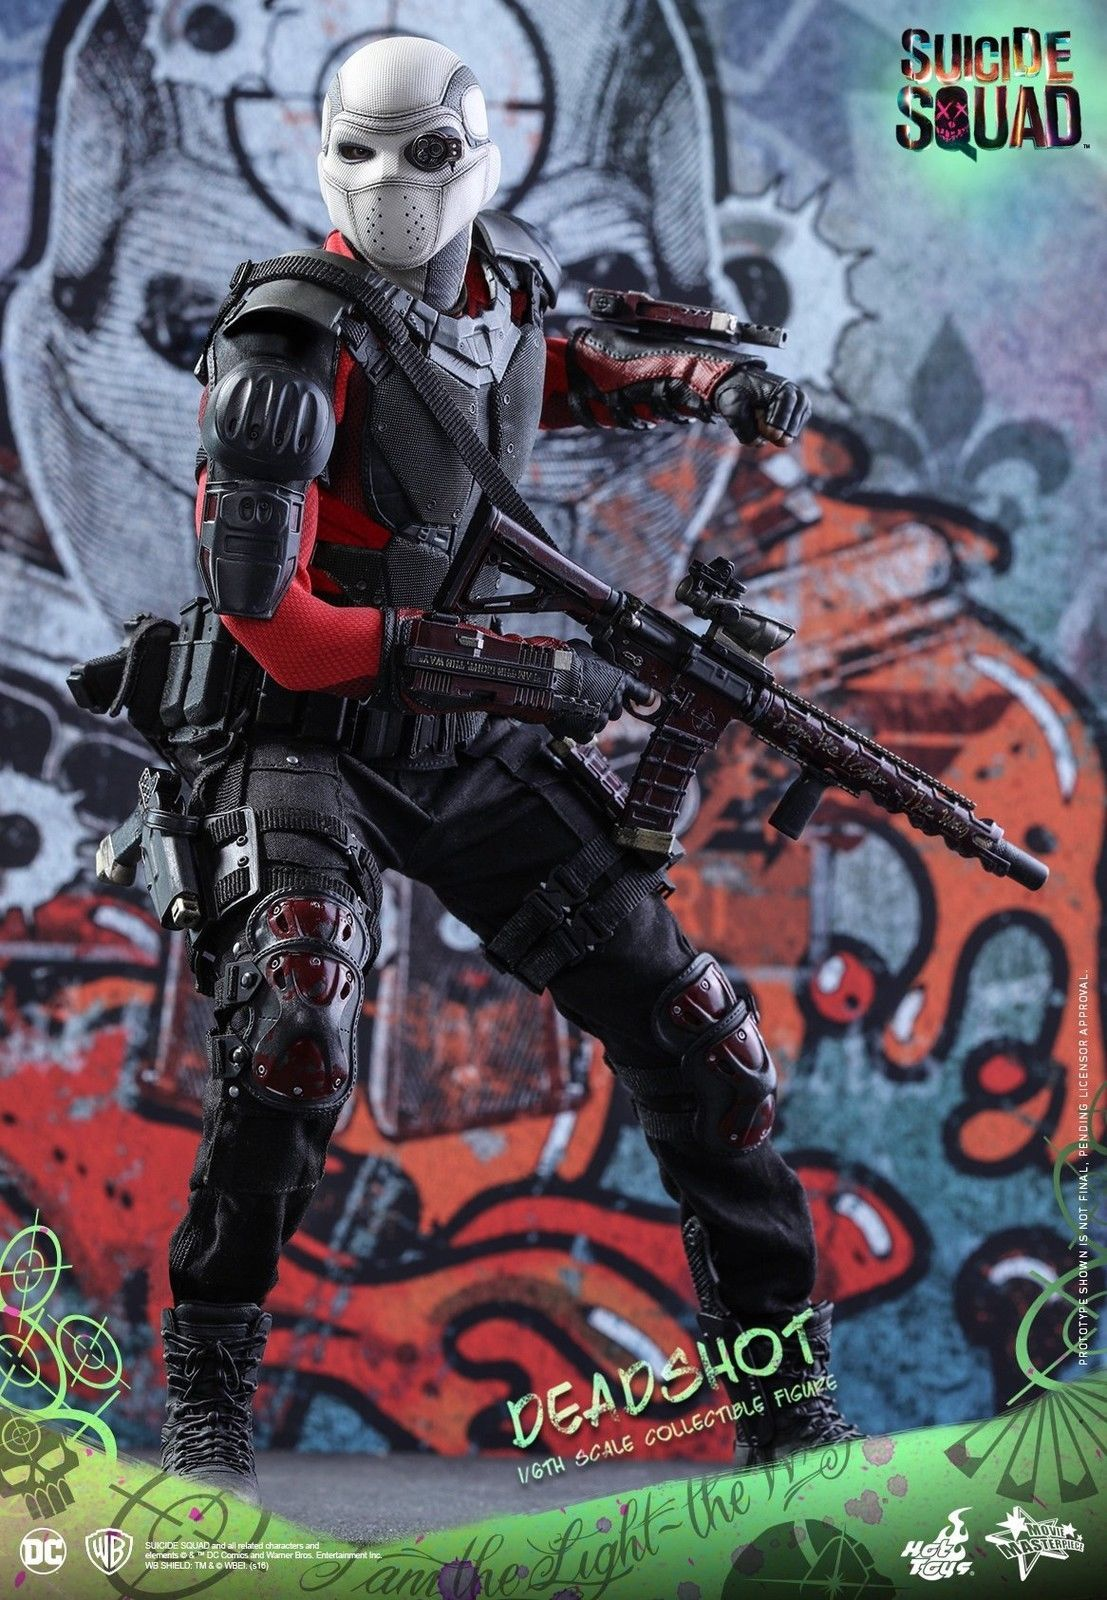 1/6 Deadshot-Hot-Toys-1-6-Scale-Figure-Suicide-Squad